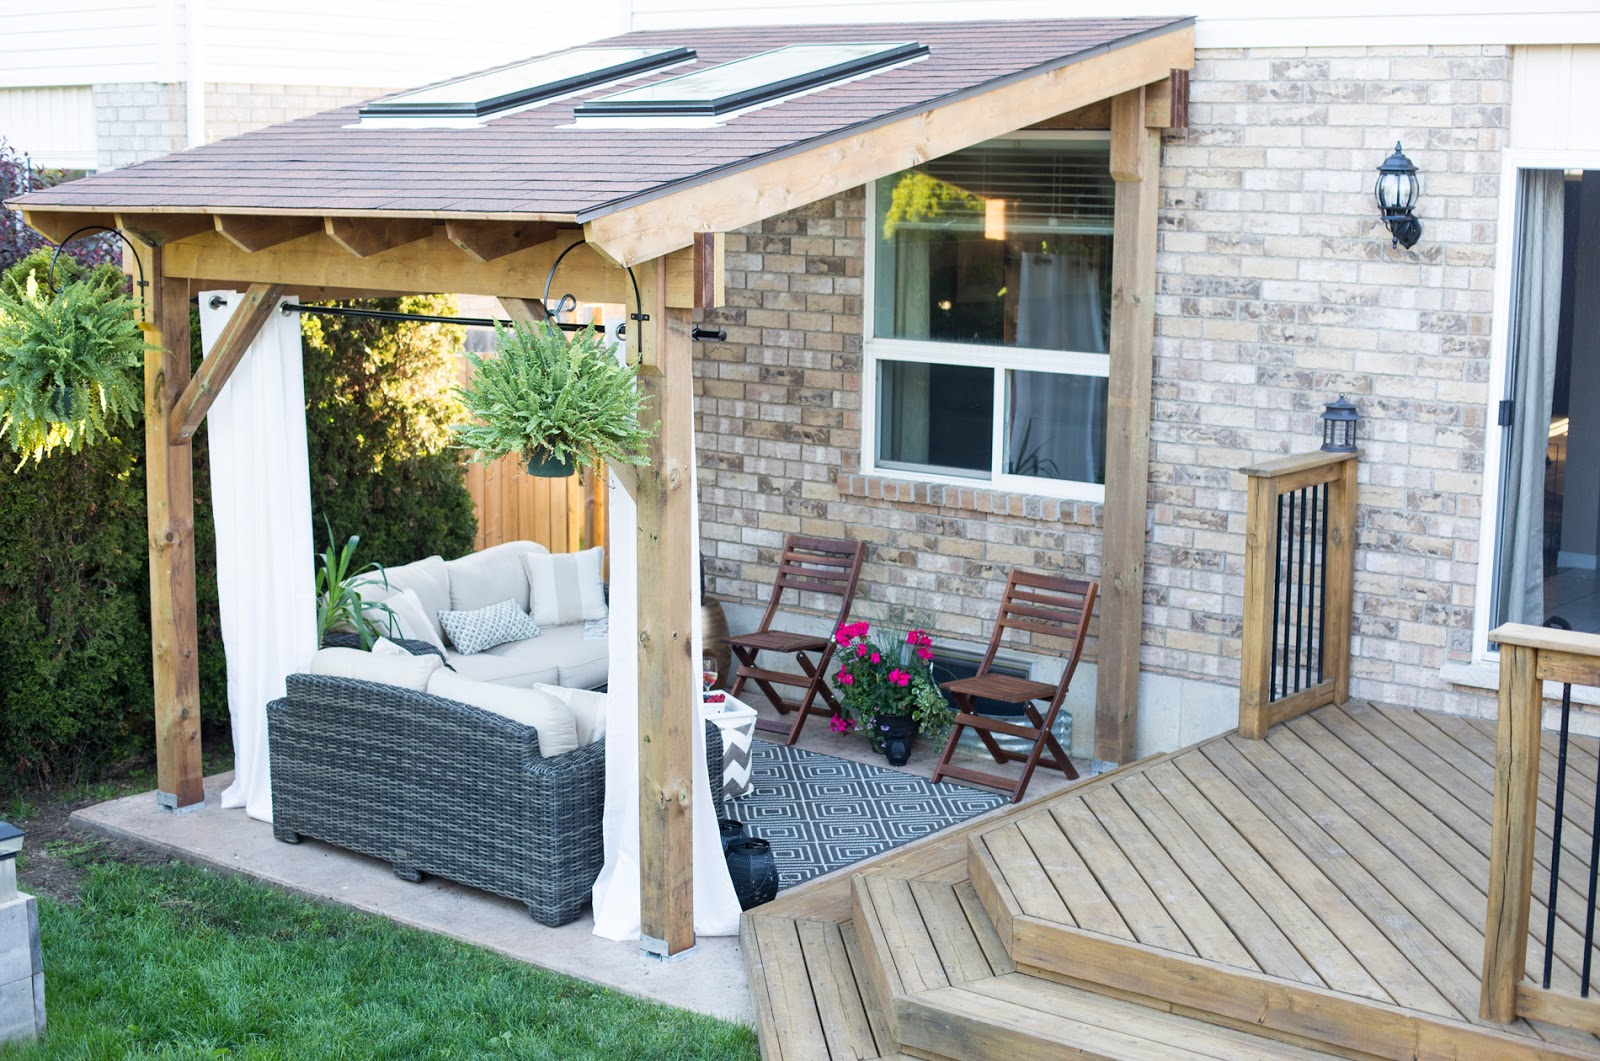 Easy build Covered patios designs - CareHomeDecor on Patios Designs  id=84238